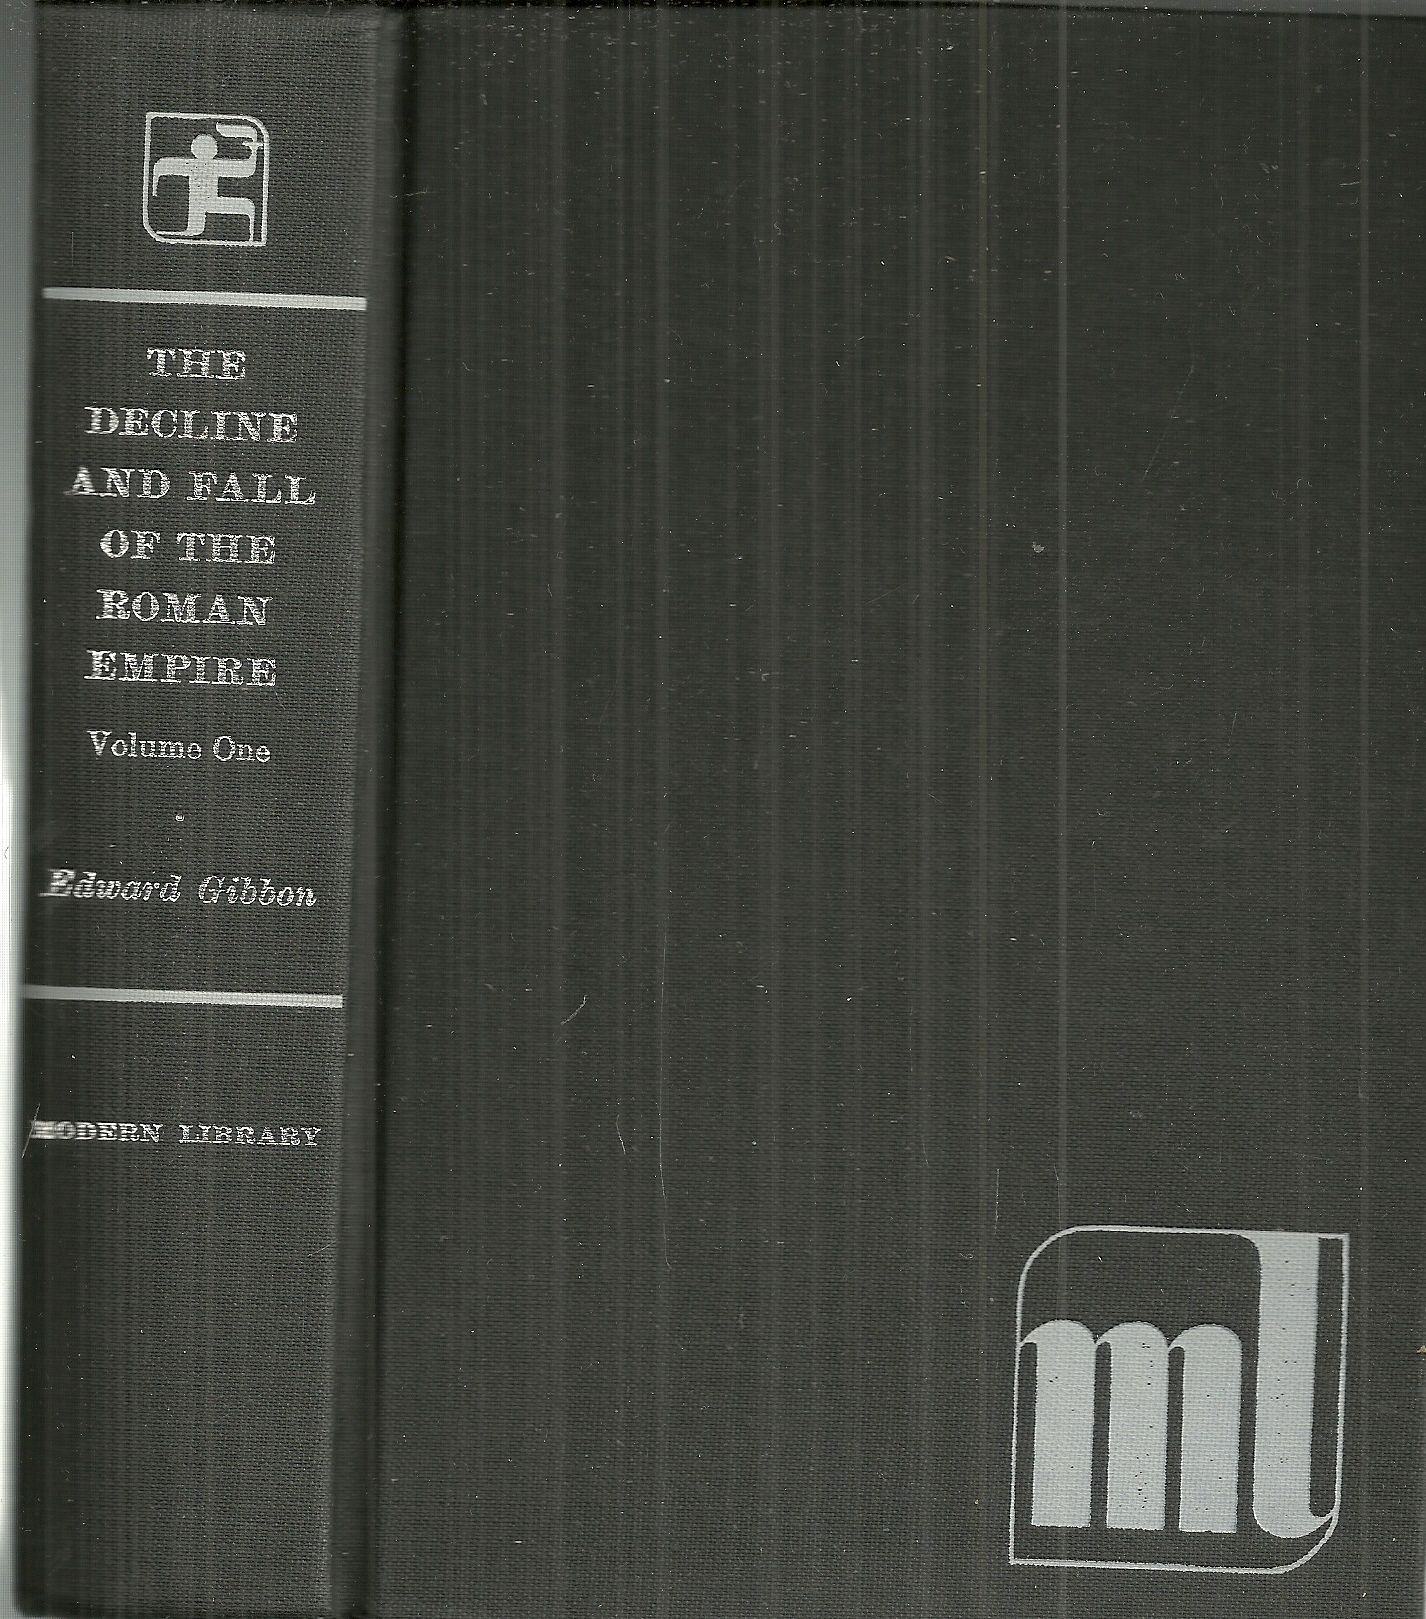 The Decline and Fall of the Roman Empire, Volume I 180 A.D. - 395 A.D., Gibbon, Edward